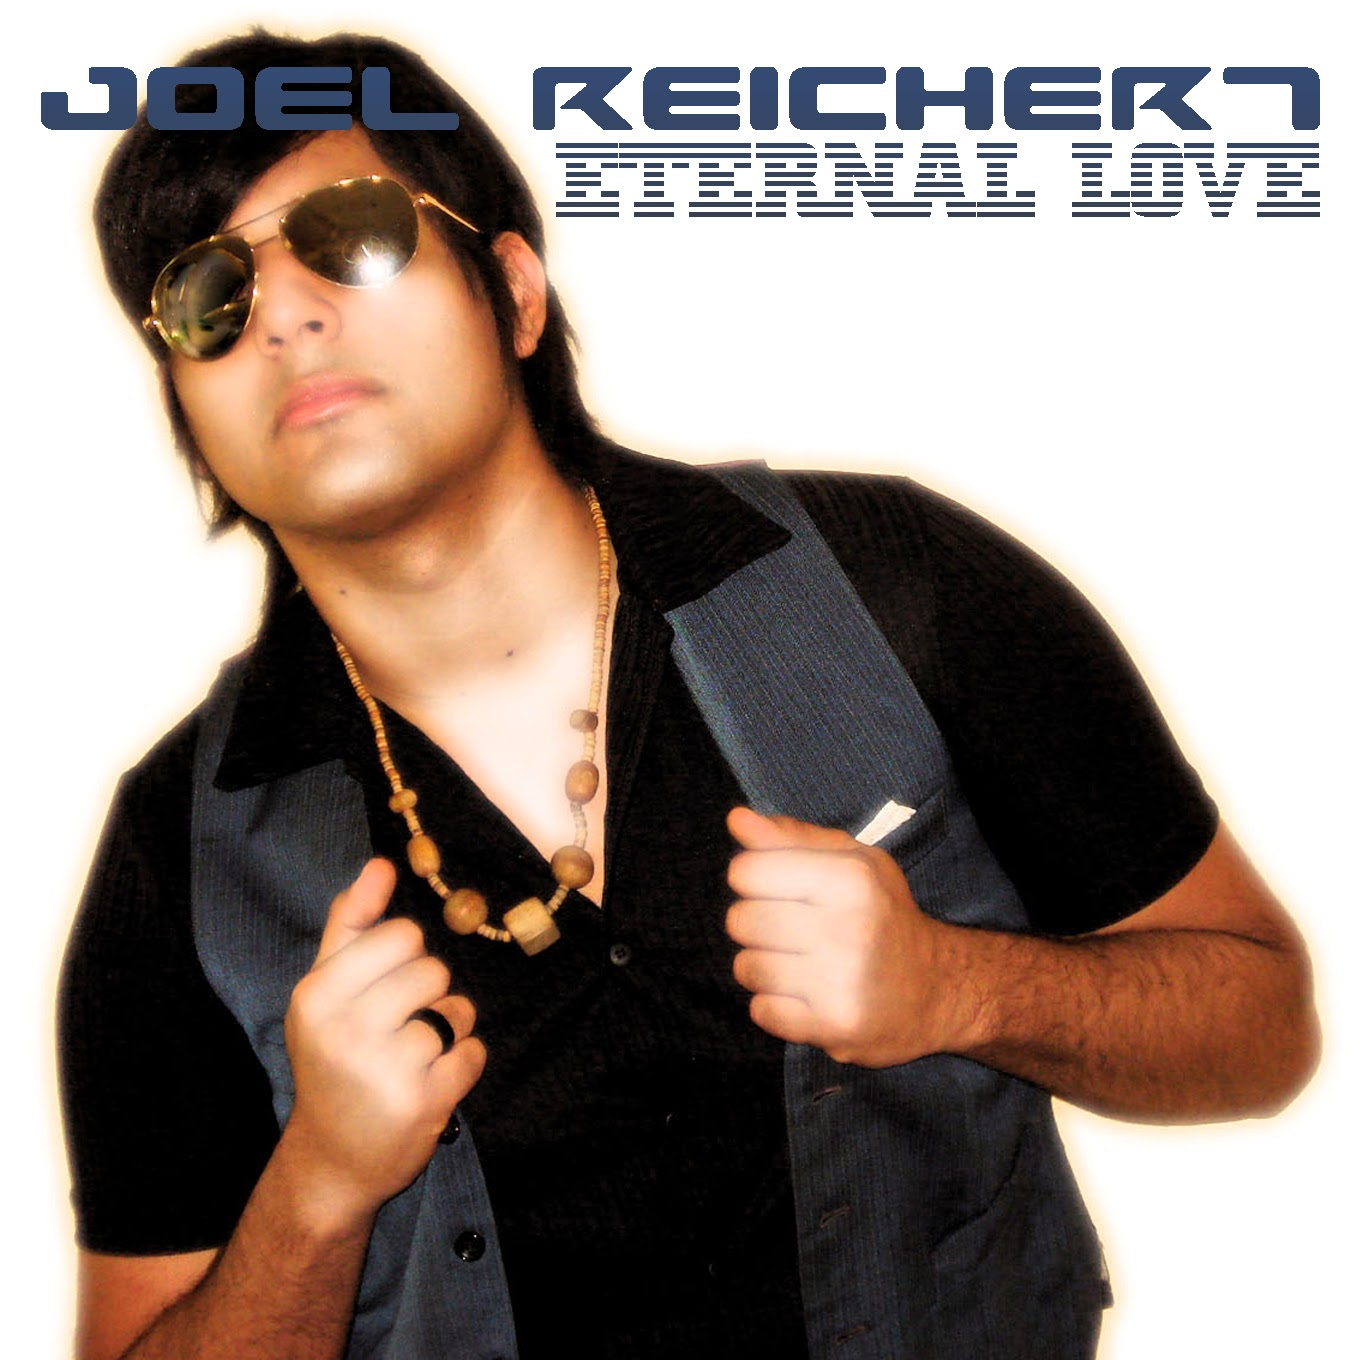 Joel Reichert - Eternal Love (2010)